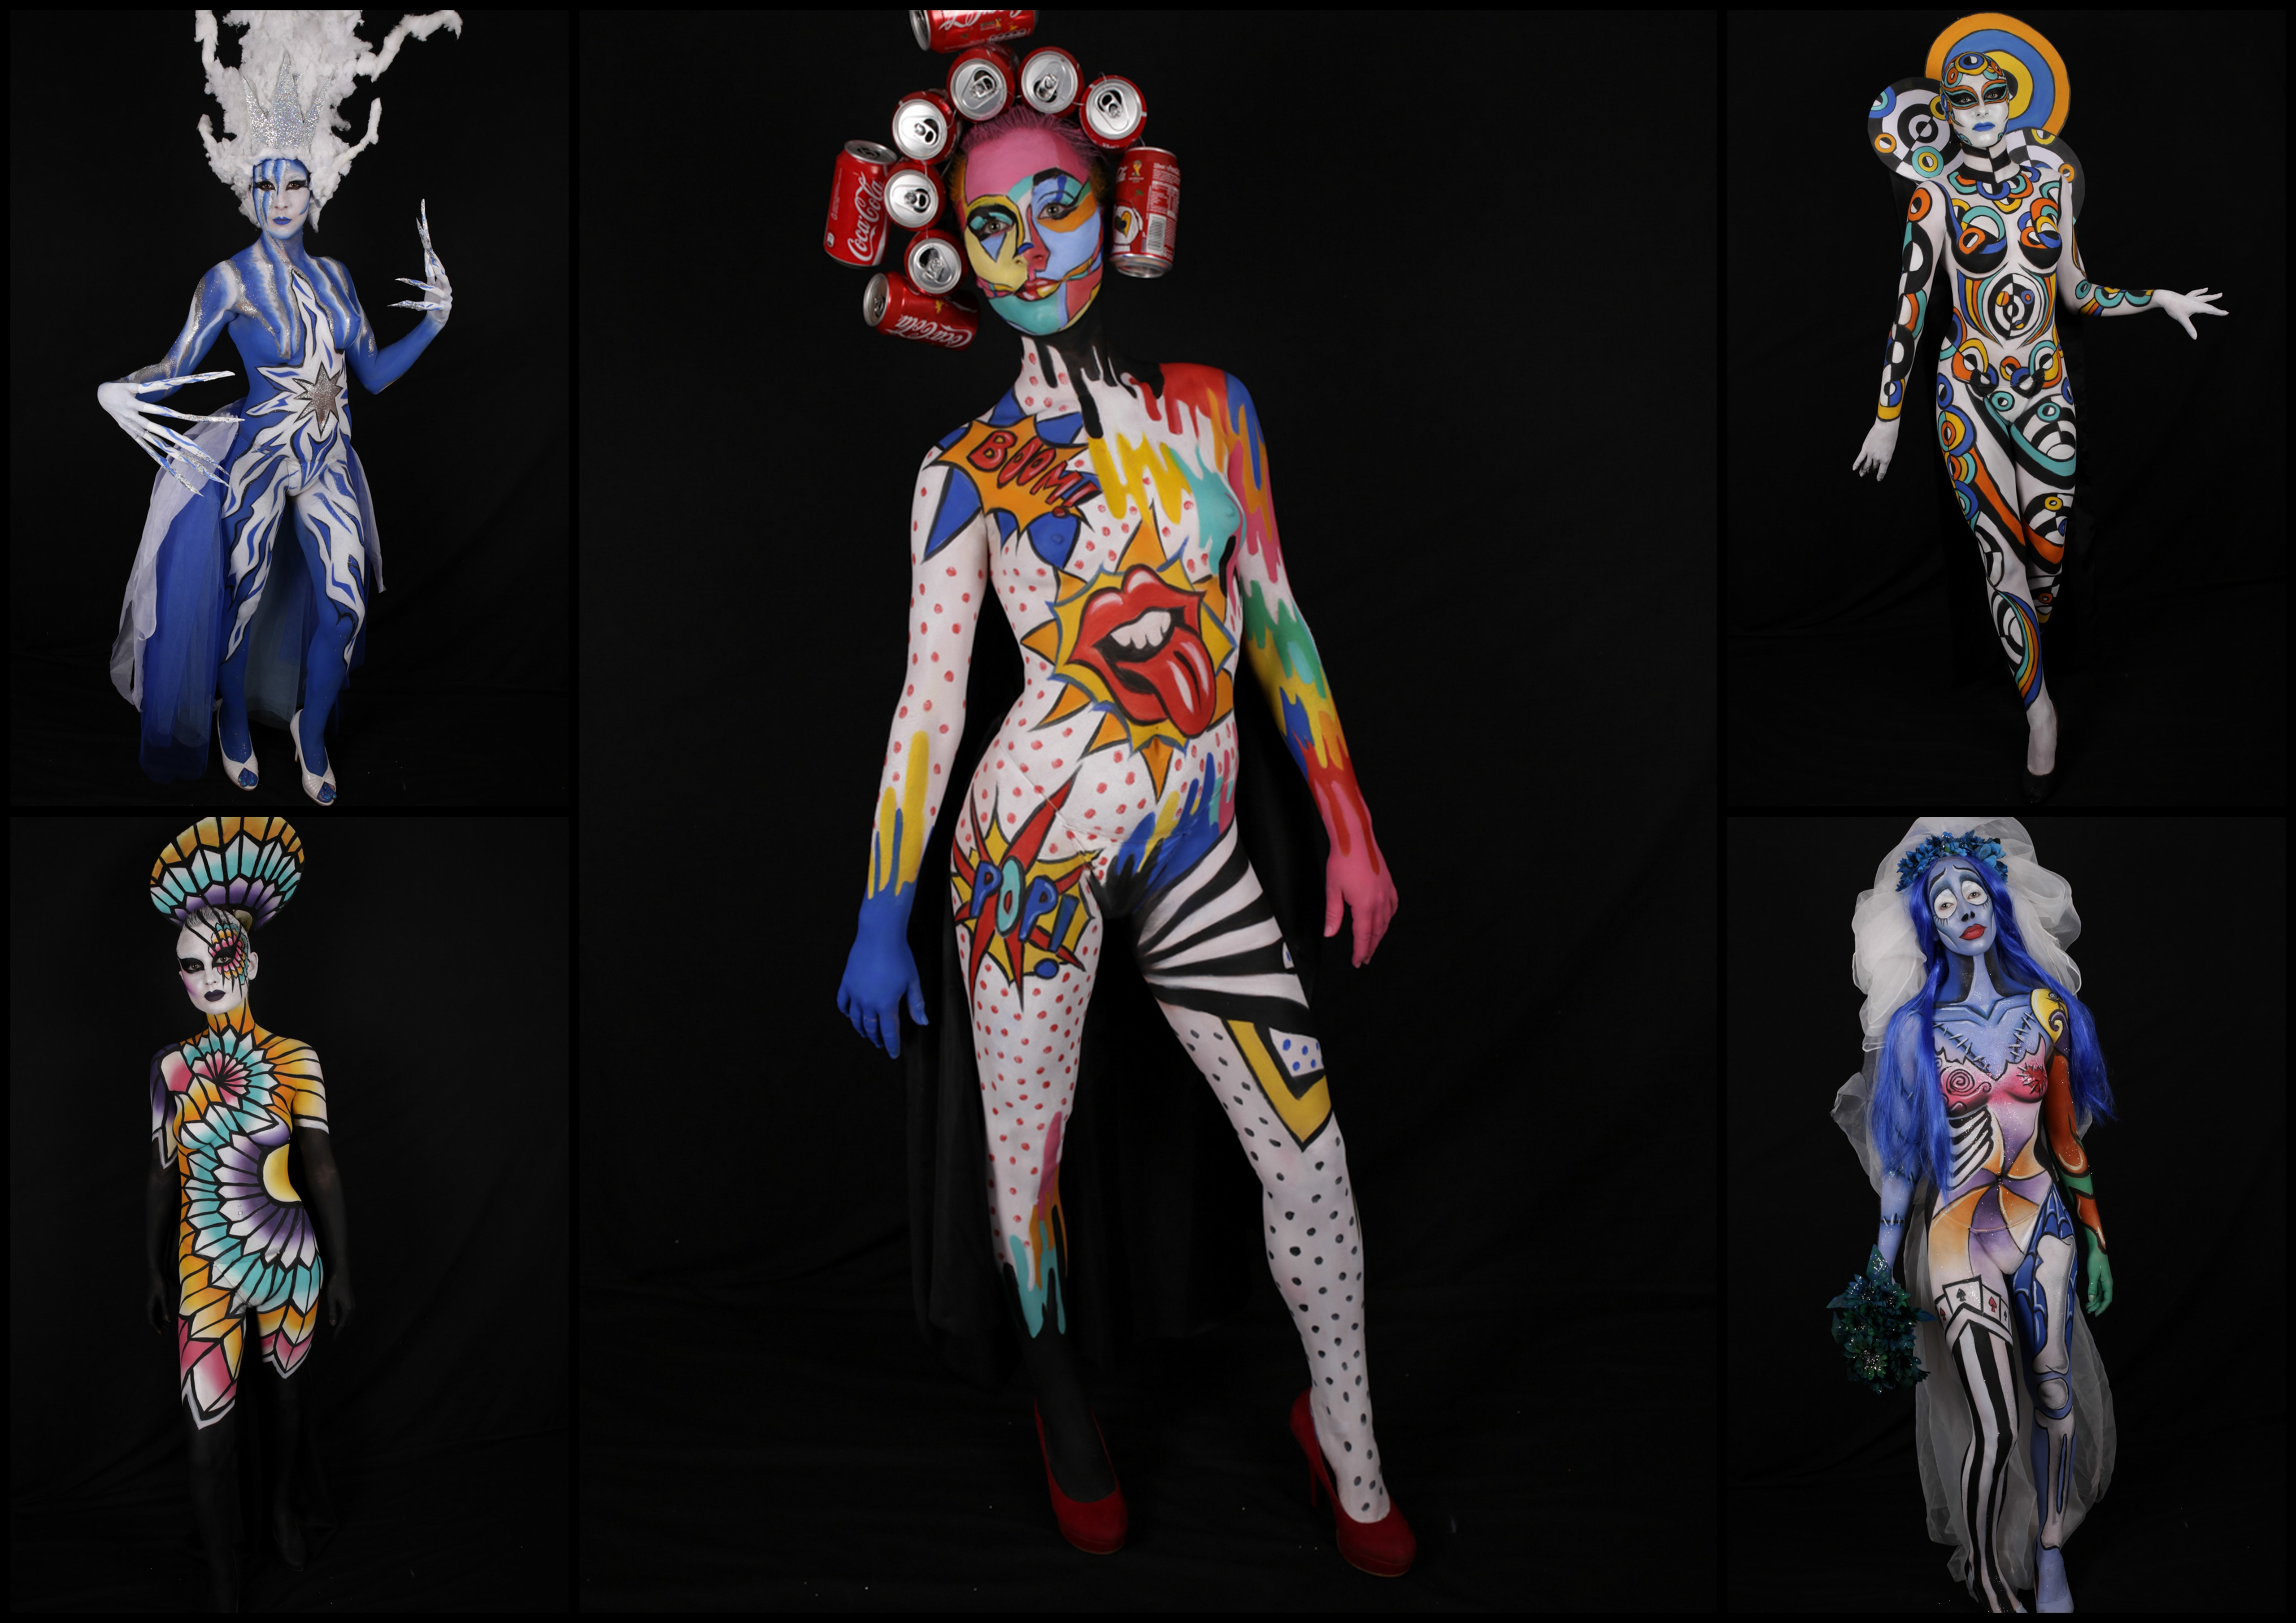 Bienvenue au défilé body painting de MAKE UP FOR EVER